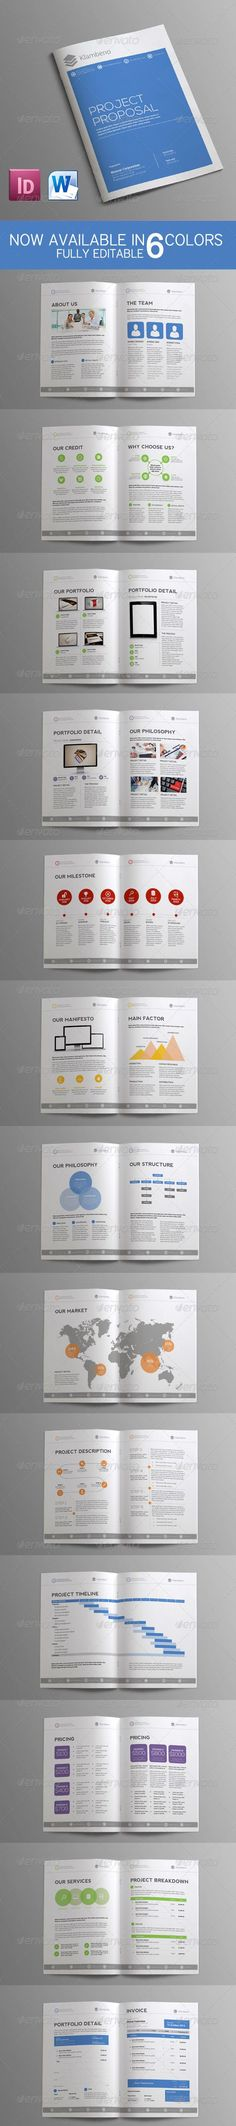 commercial proposal template #09 Ком пред Pinterest Proposal - commercial proposal template